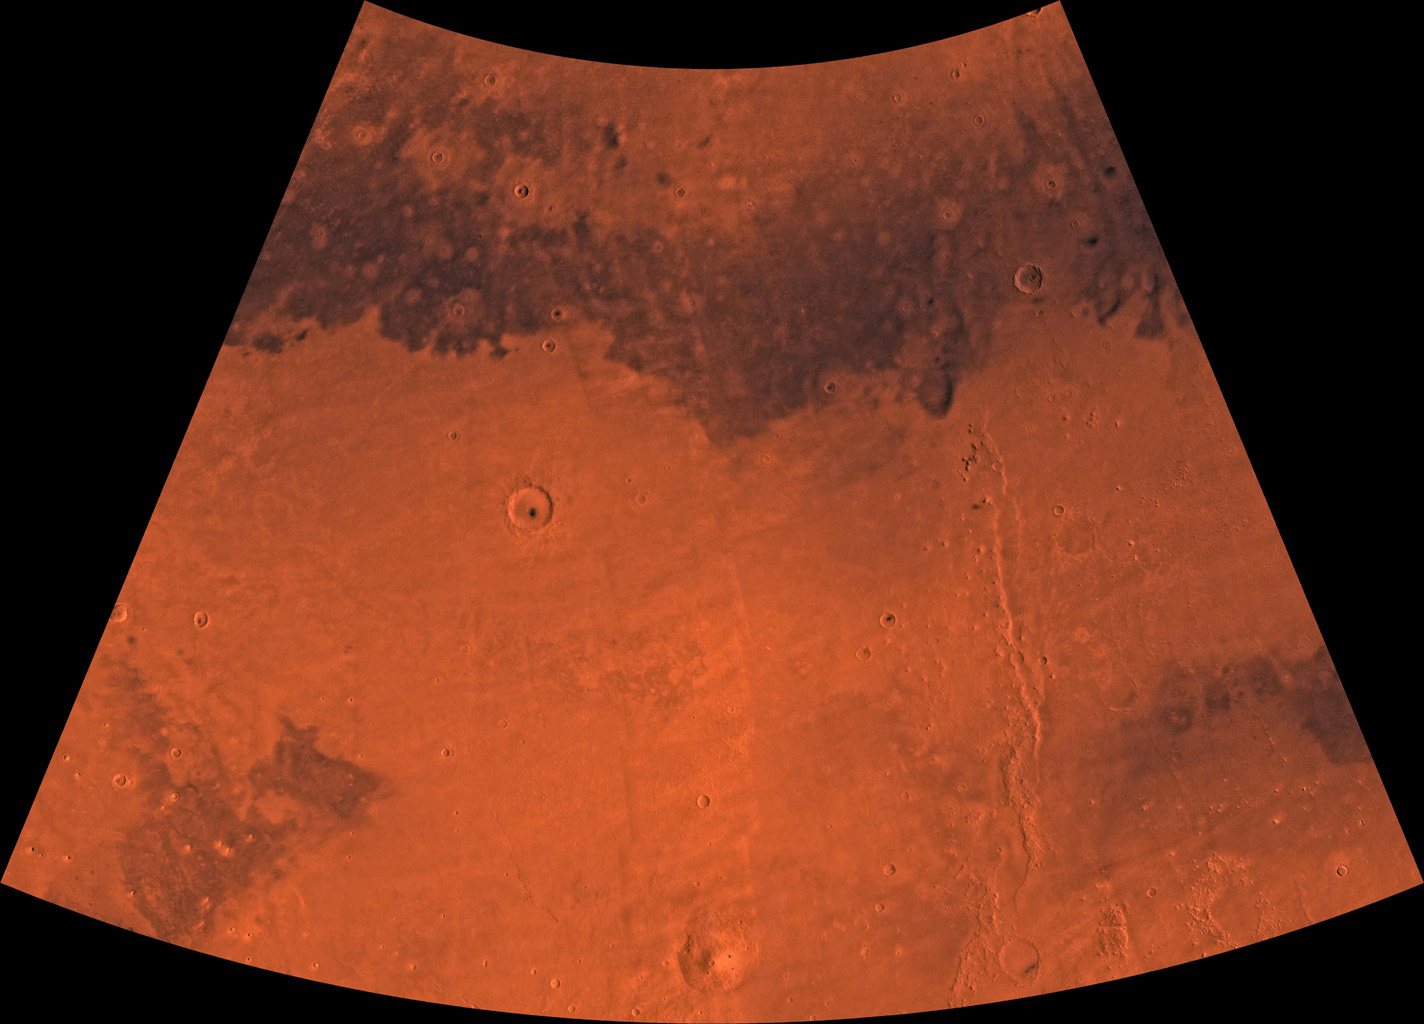 Mars digital-image mosaic merged with color of the MC-7 quadrangle, Cebrenia region of Mars. This image is from NASA's Viking Orbiter 1.